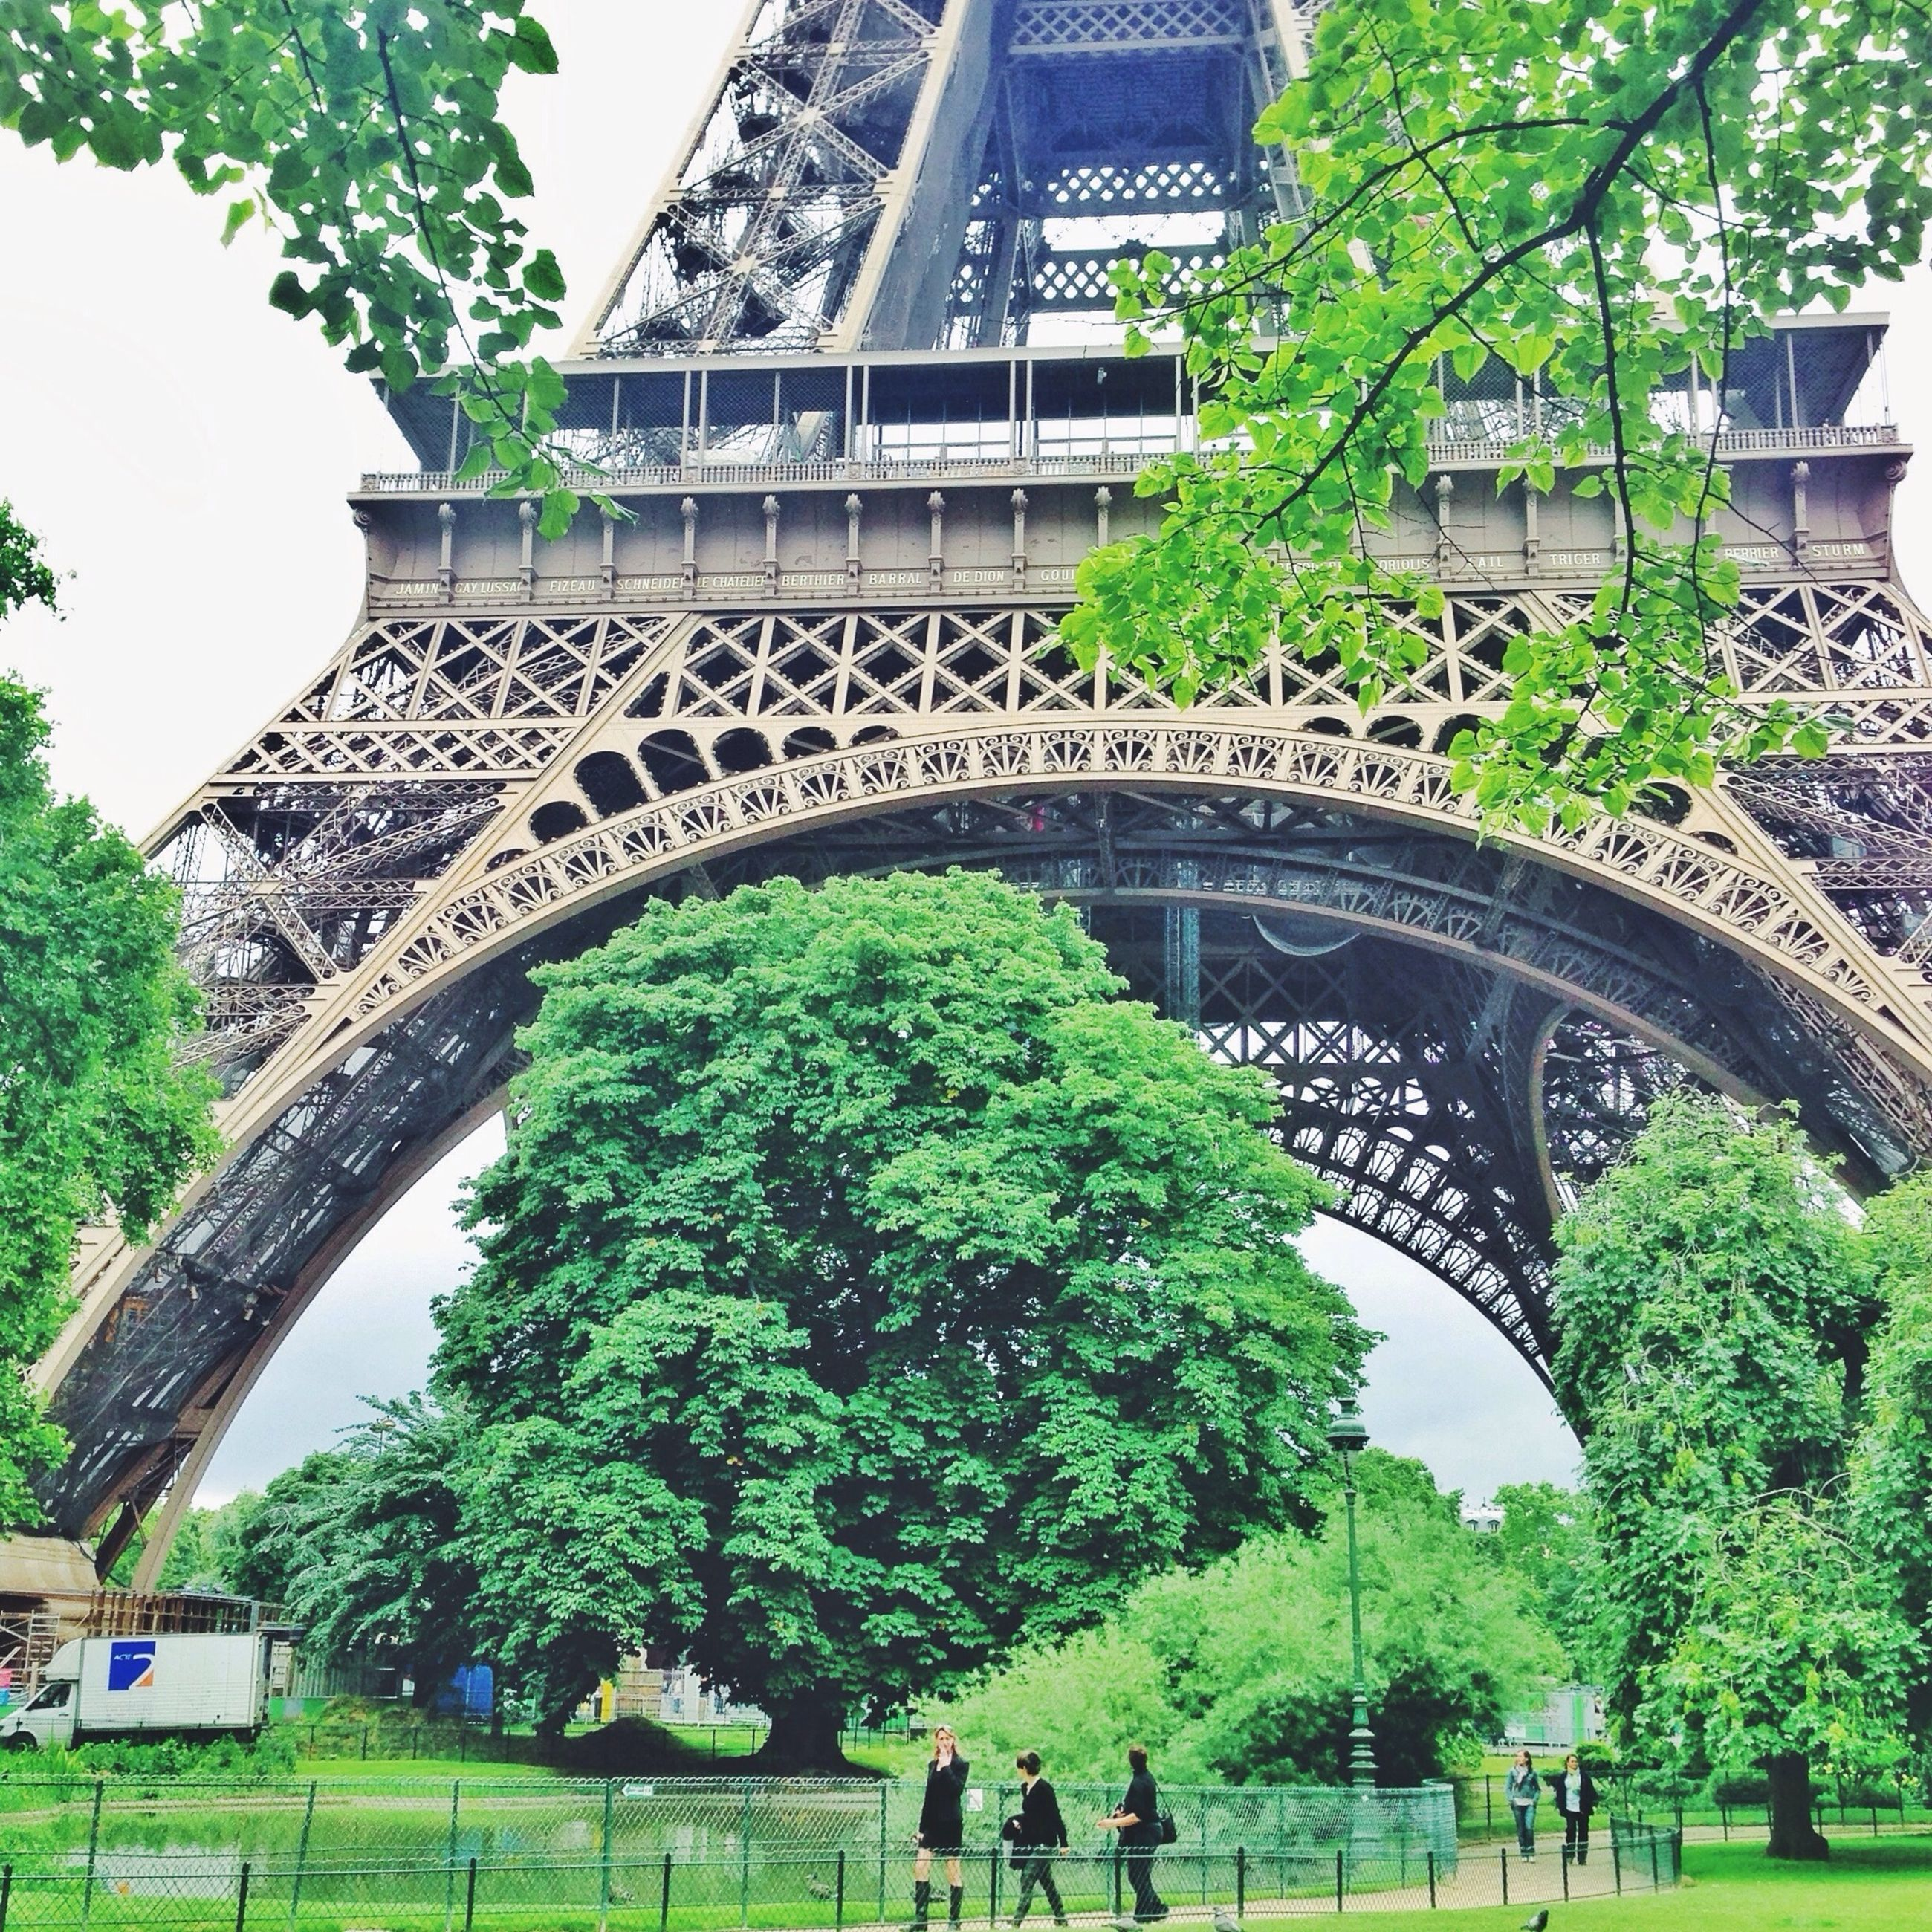 architecture, built structure, tree, building exterior, green color, arch, city, travel destinations, incidental people, growth, connection, grass, famous place, bridge - man made structure, plant, travel, park - man made space, day, capital cities, formal garden